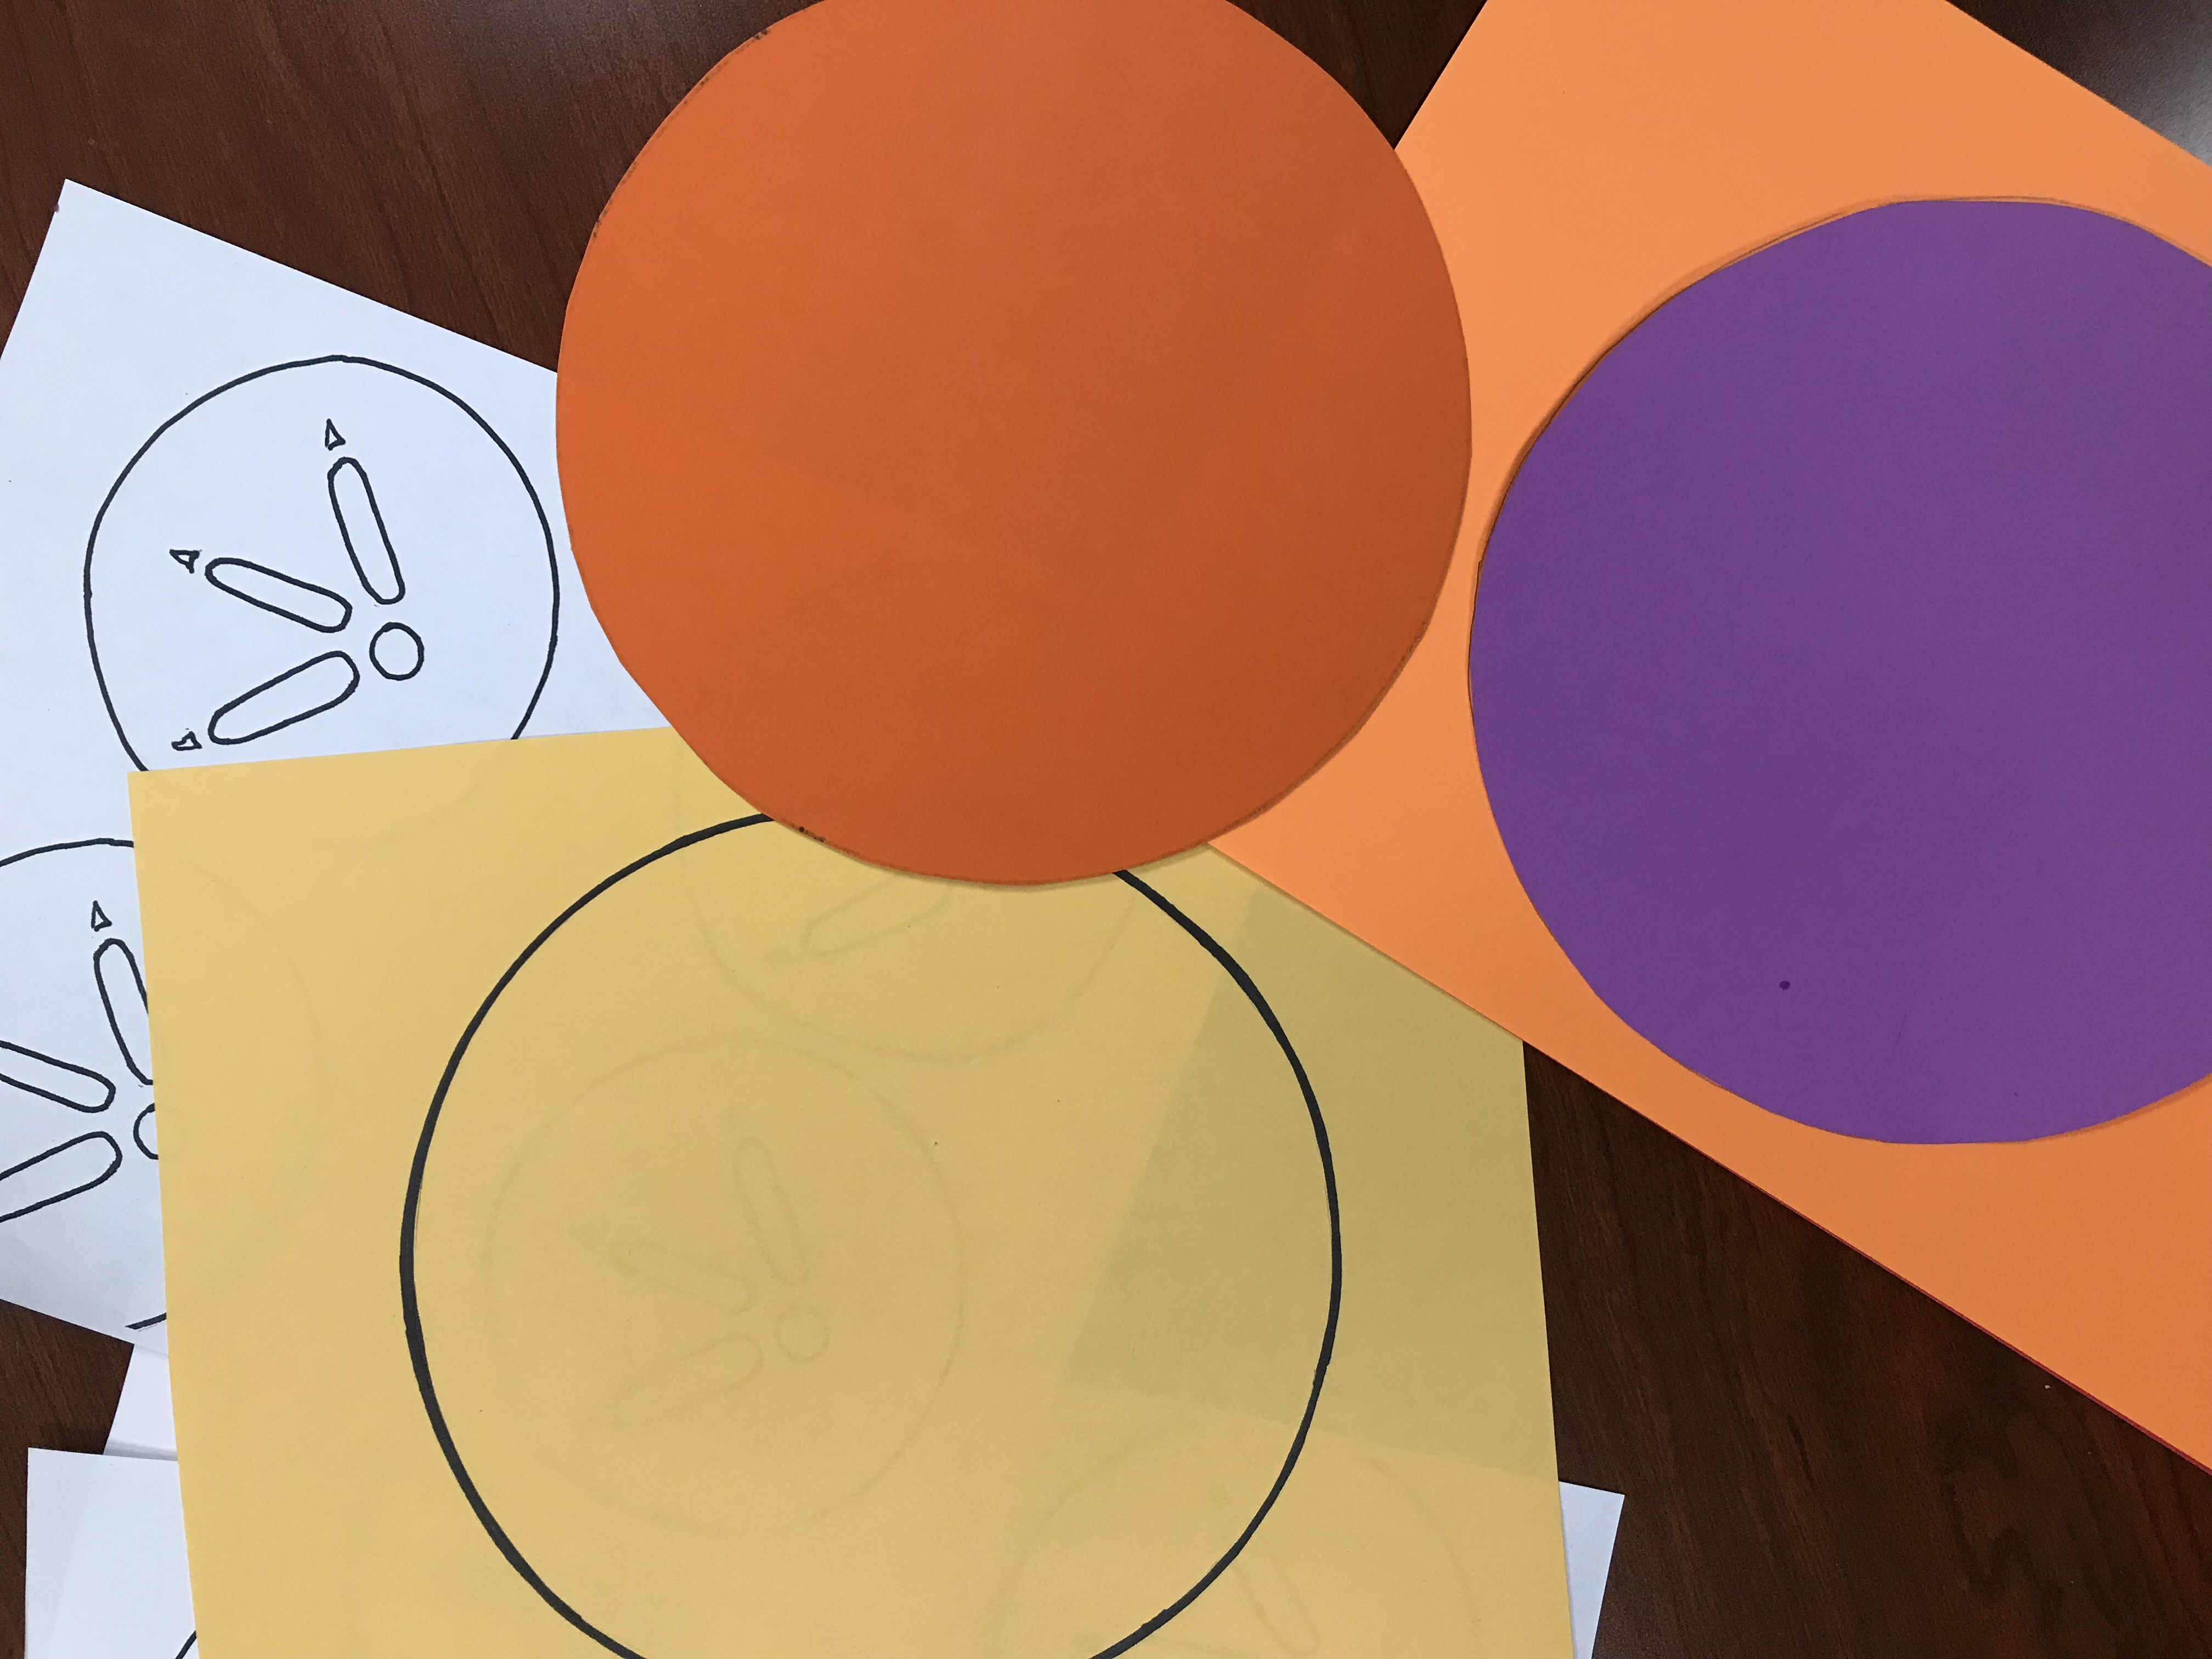 Cut out colored circles